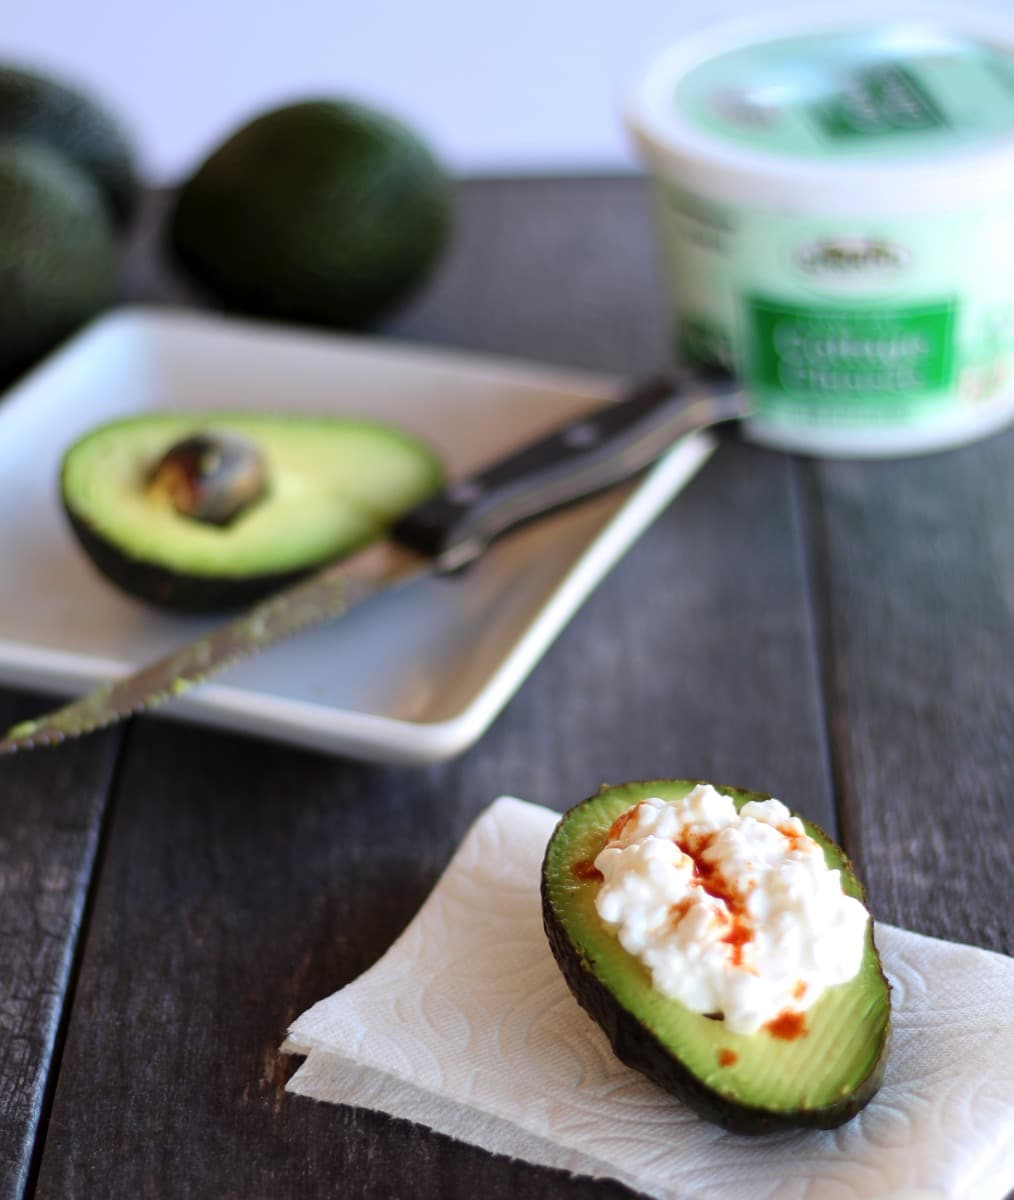 Avocado coattage cheese